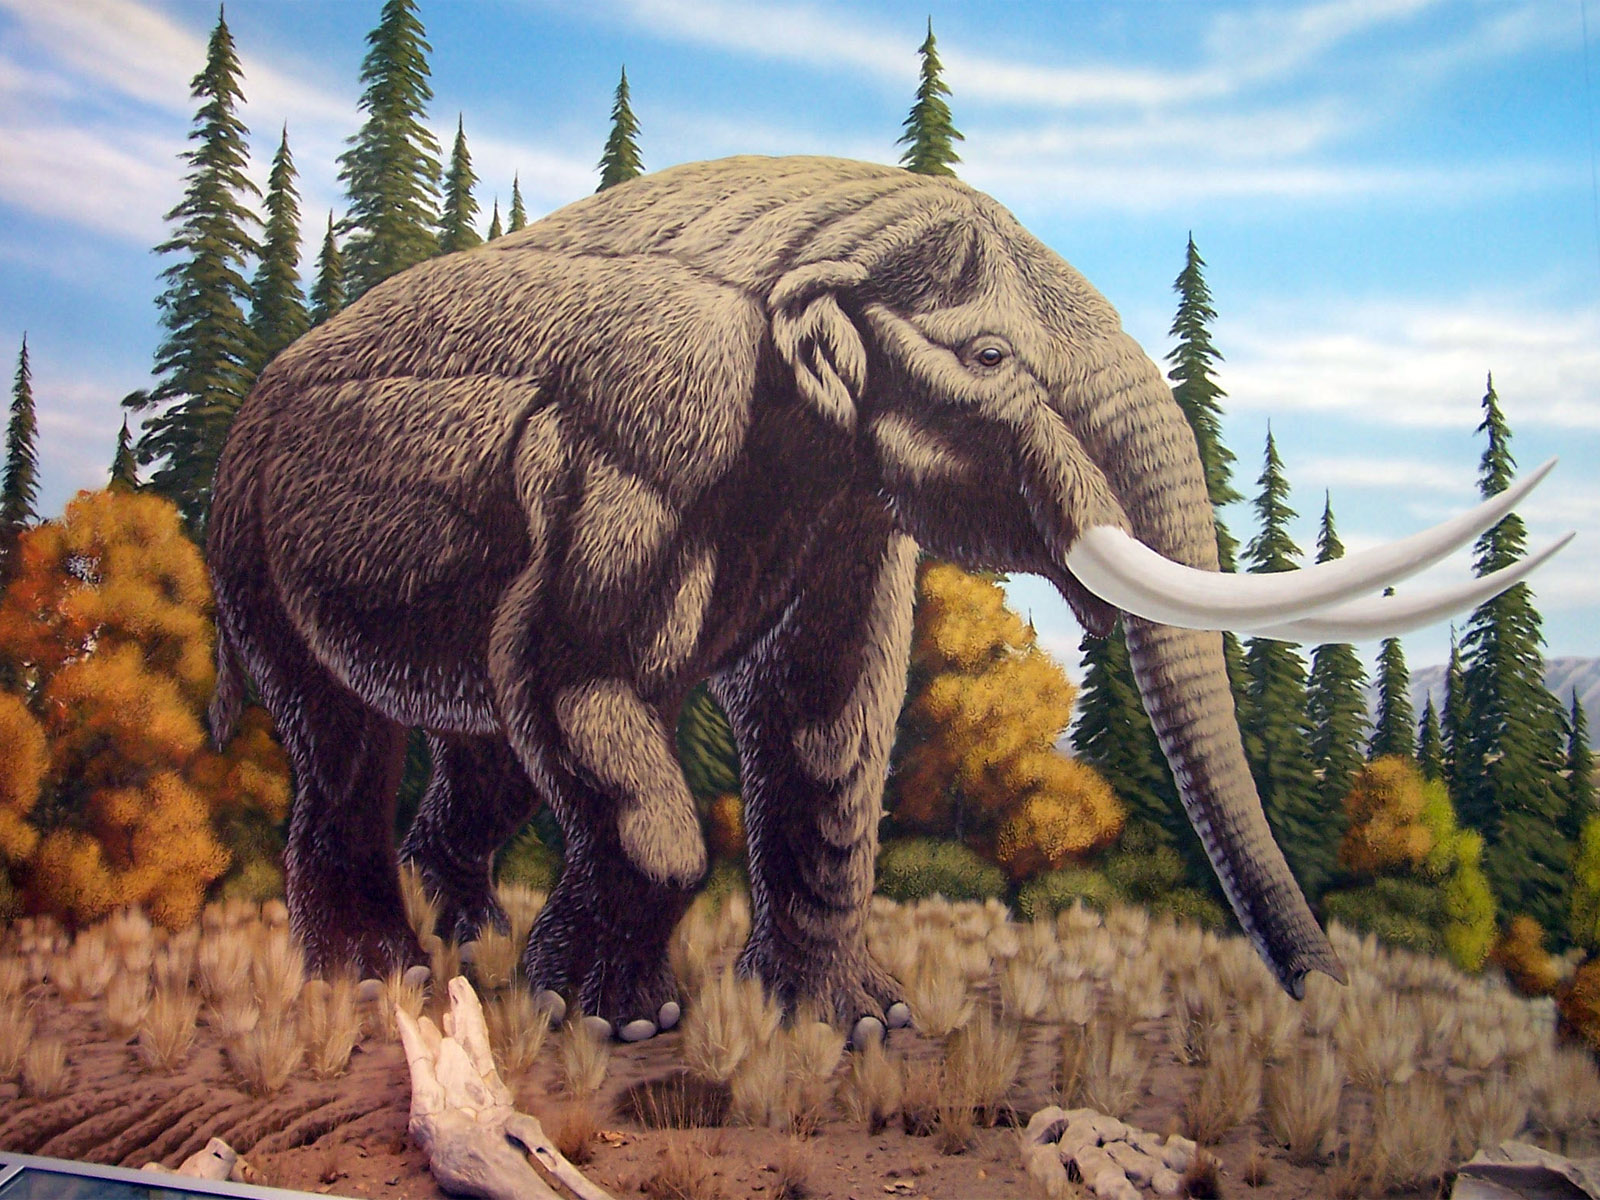 High Definition Animal Wallpapers Mastodon Wallpaper Free Hd Backgrounds Images Pictures